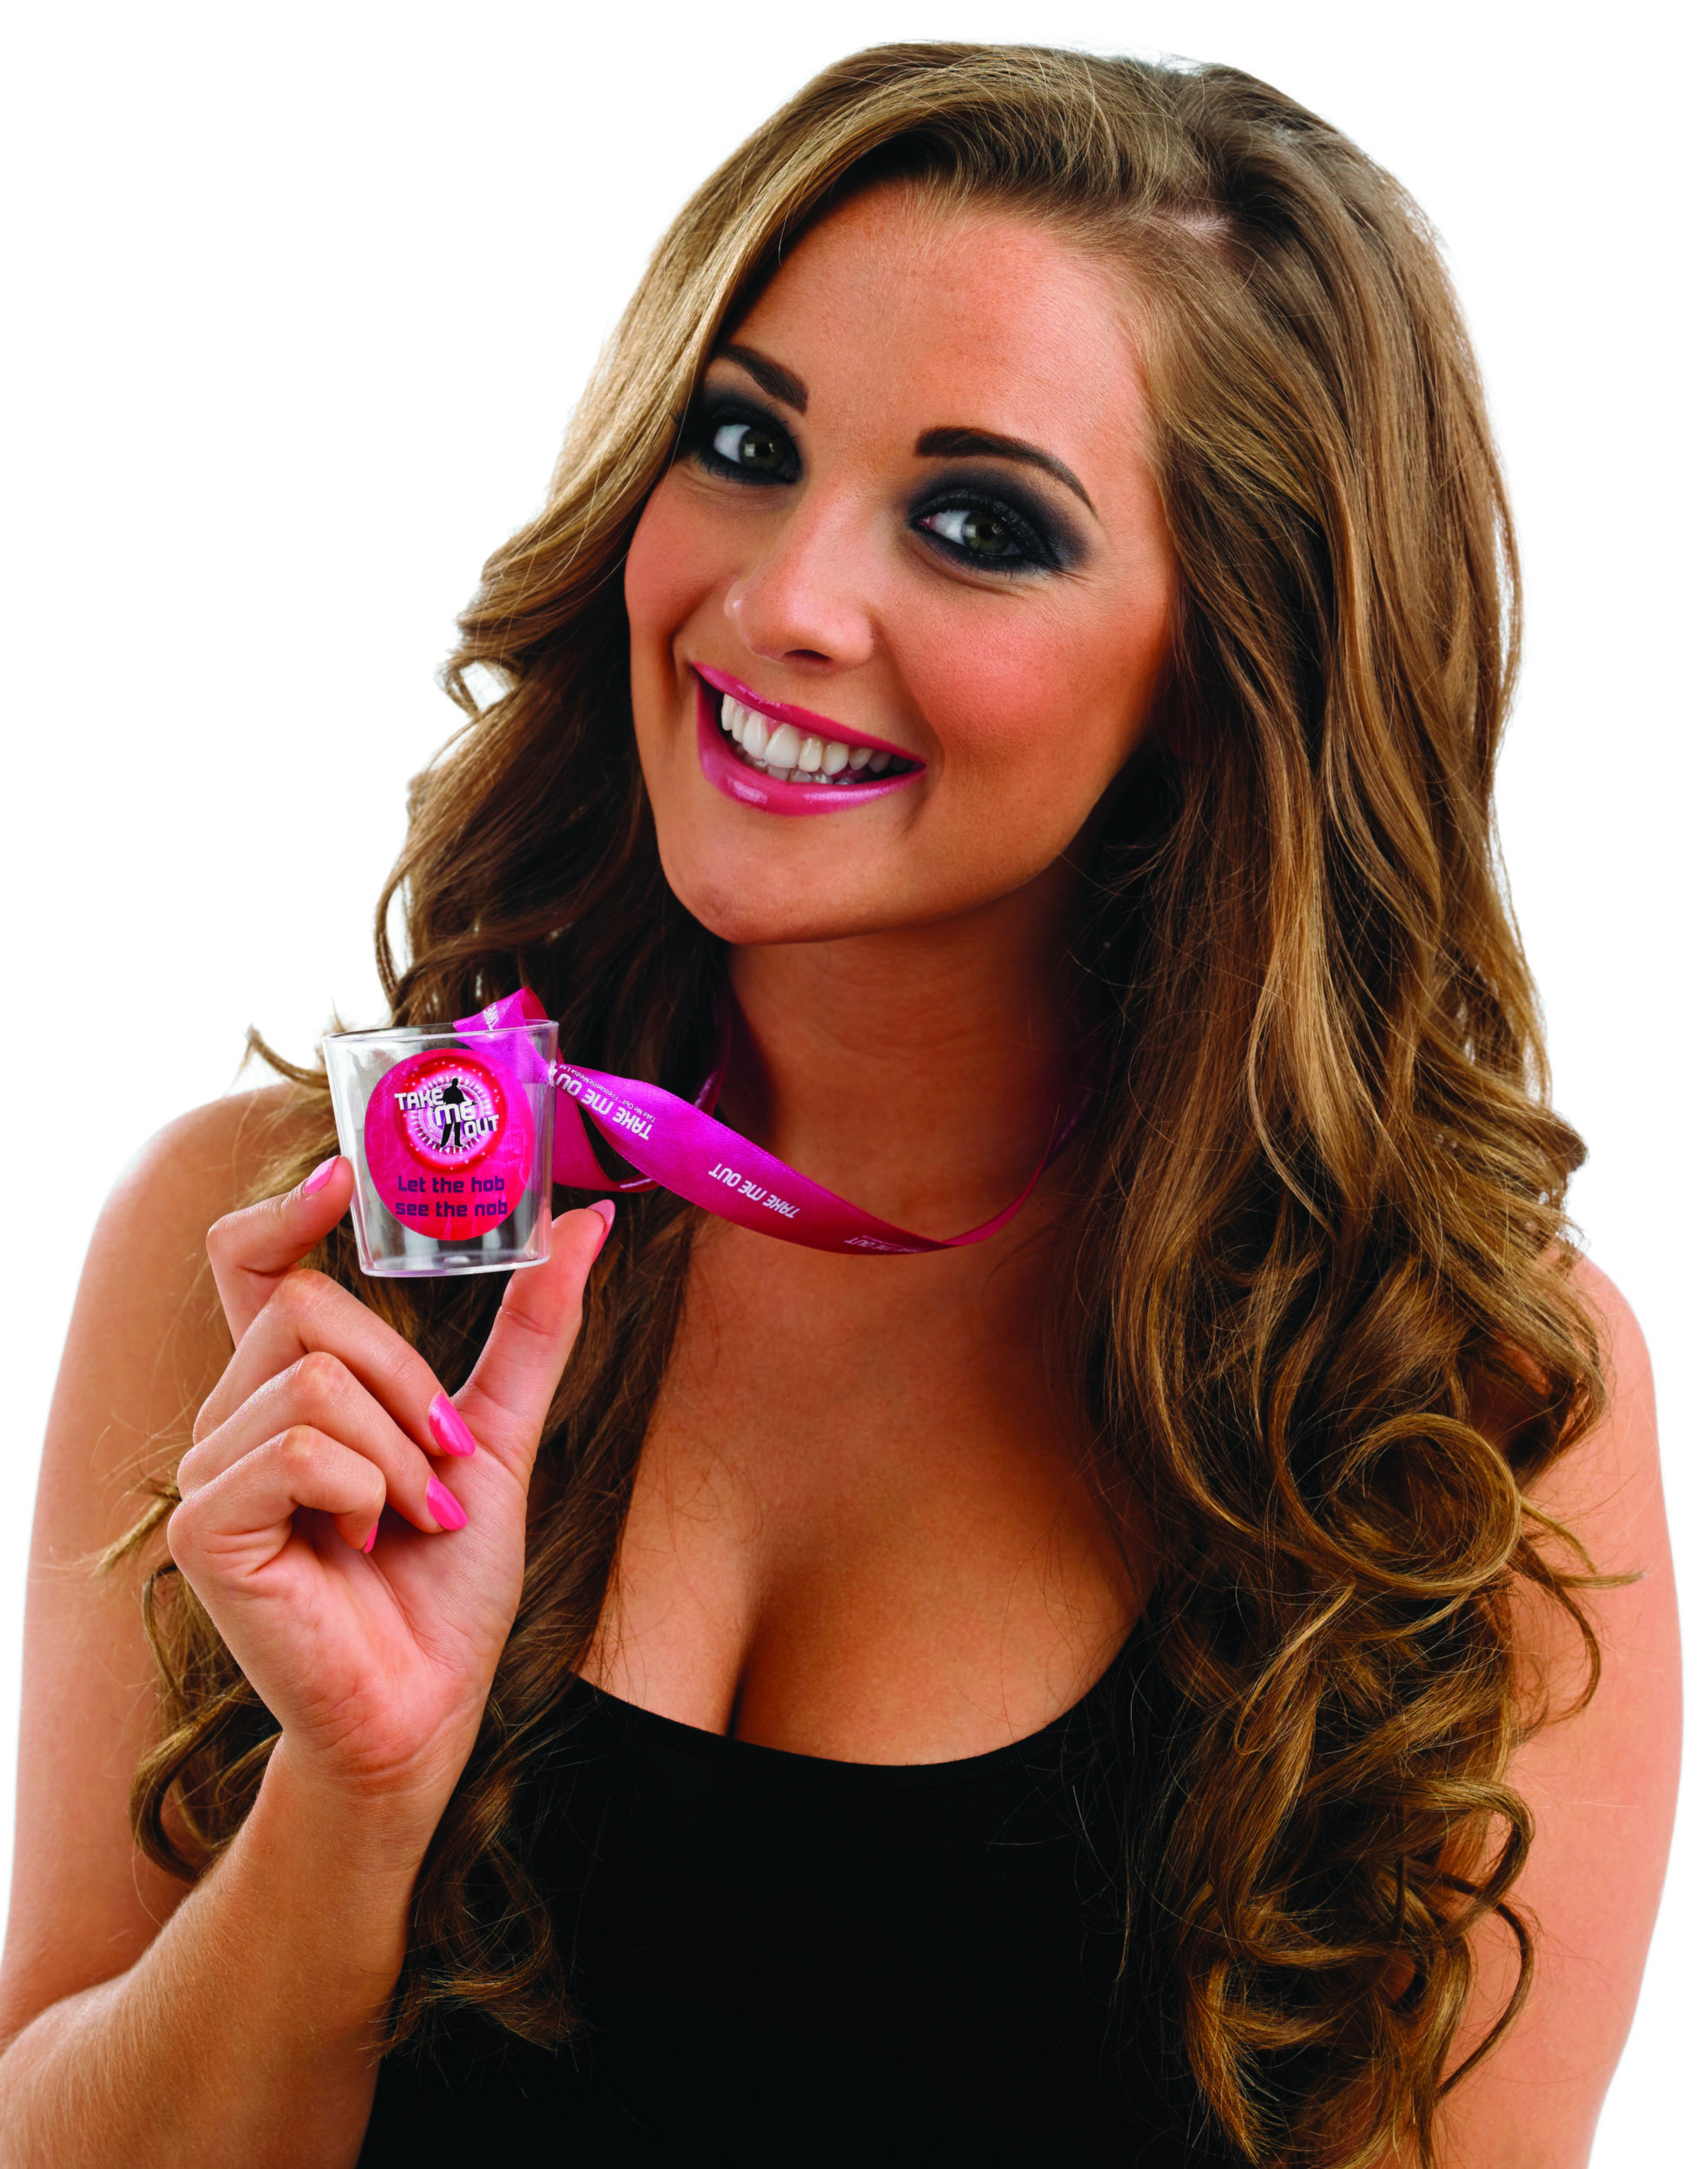 Take Me Out Hen Party Accessory Let The Hob See The Nob Shot Glass